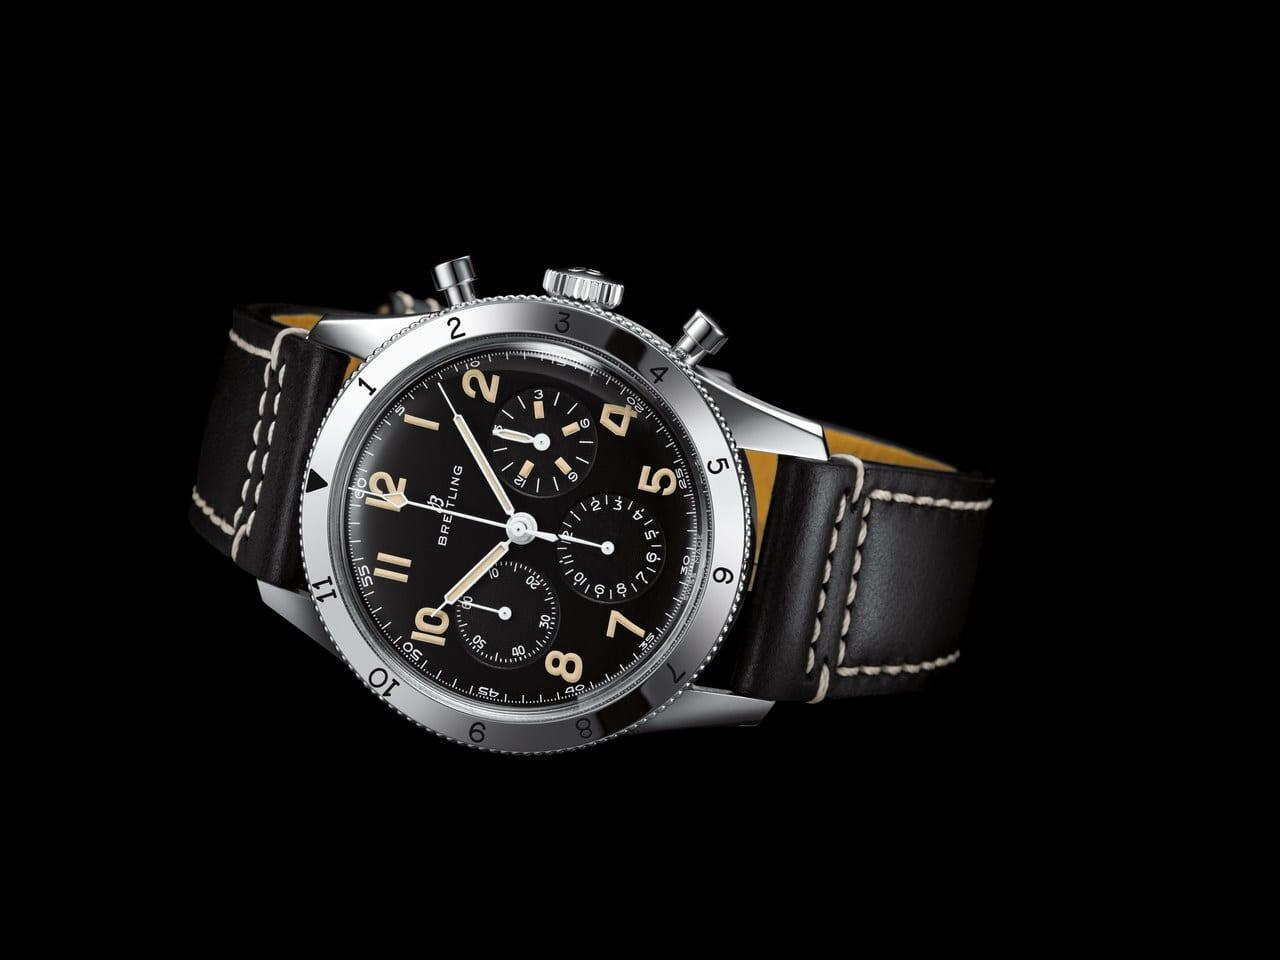 Breitling AVI-Ref. 765 1953 Re-Edition